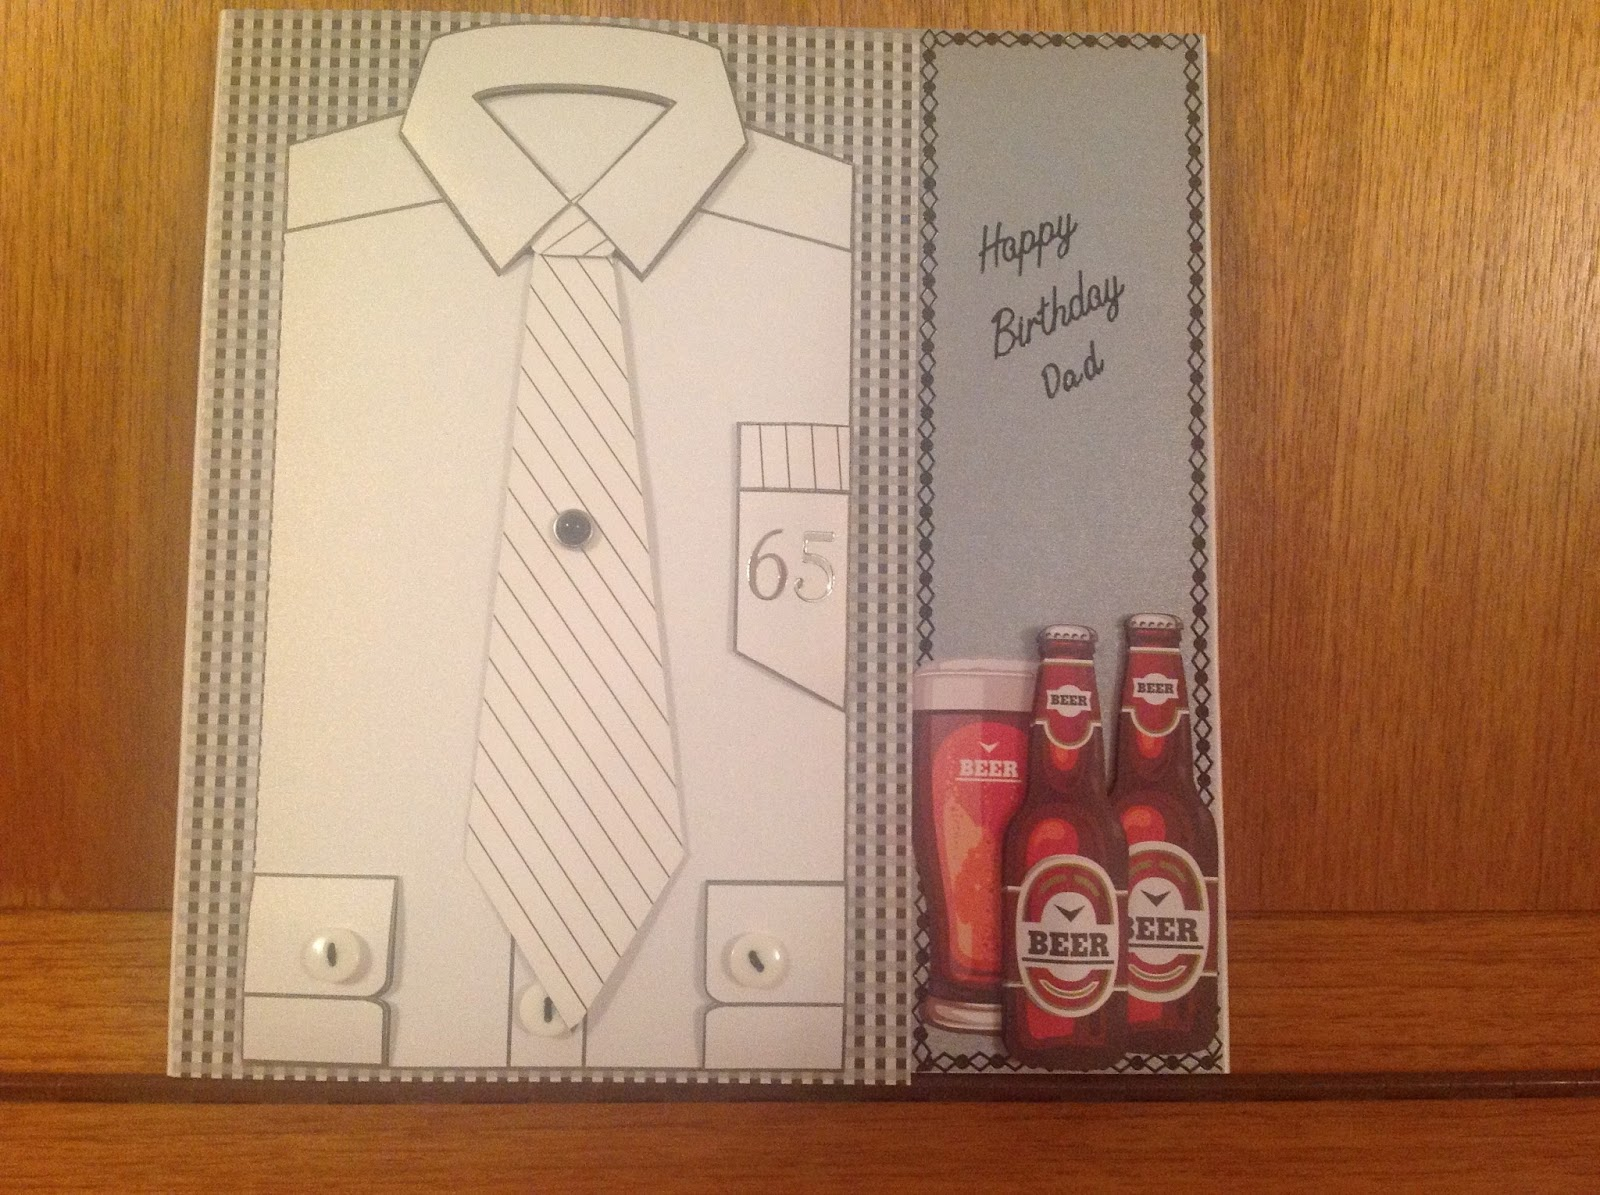 The Beer Glass And Bottles Of Were From A Magazine Making Cards For Men